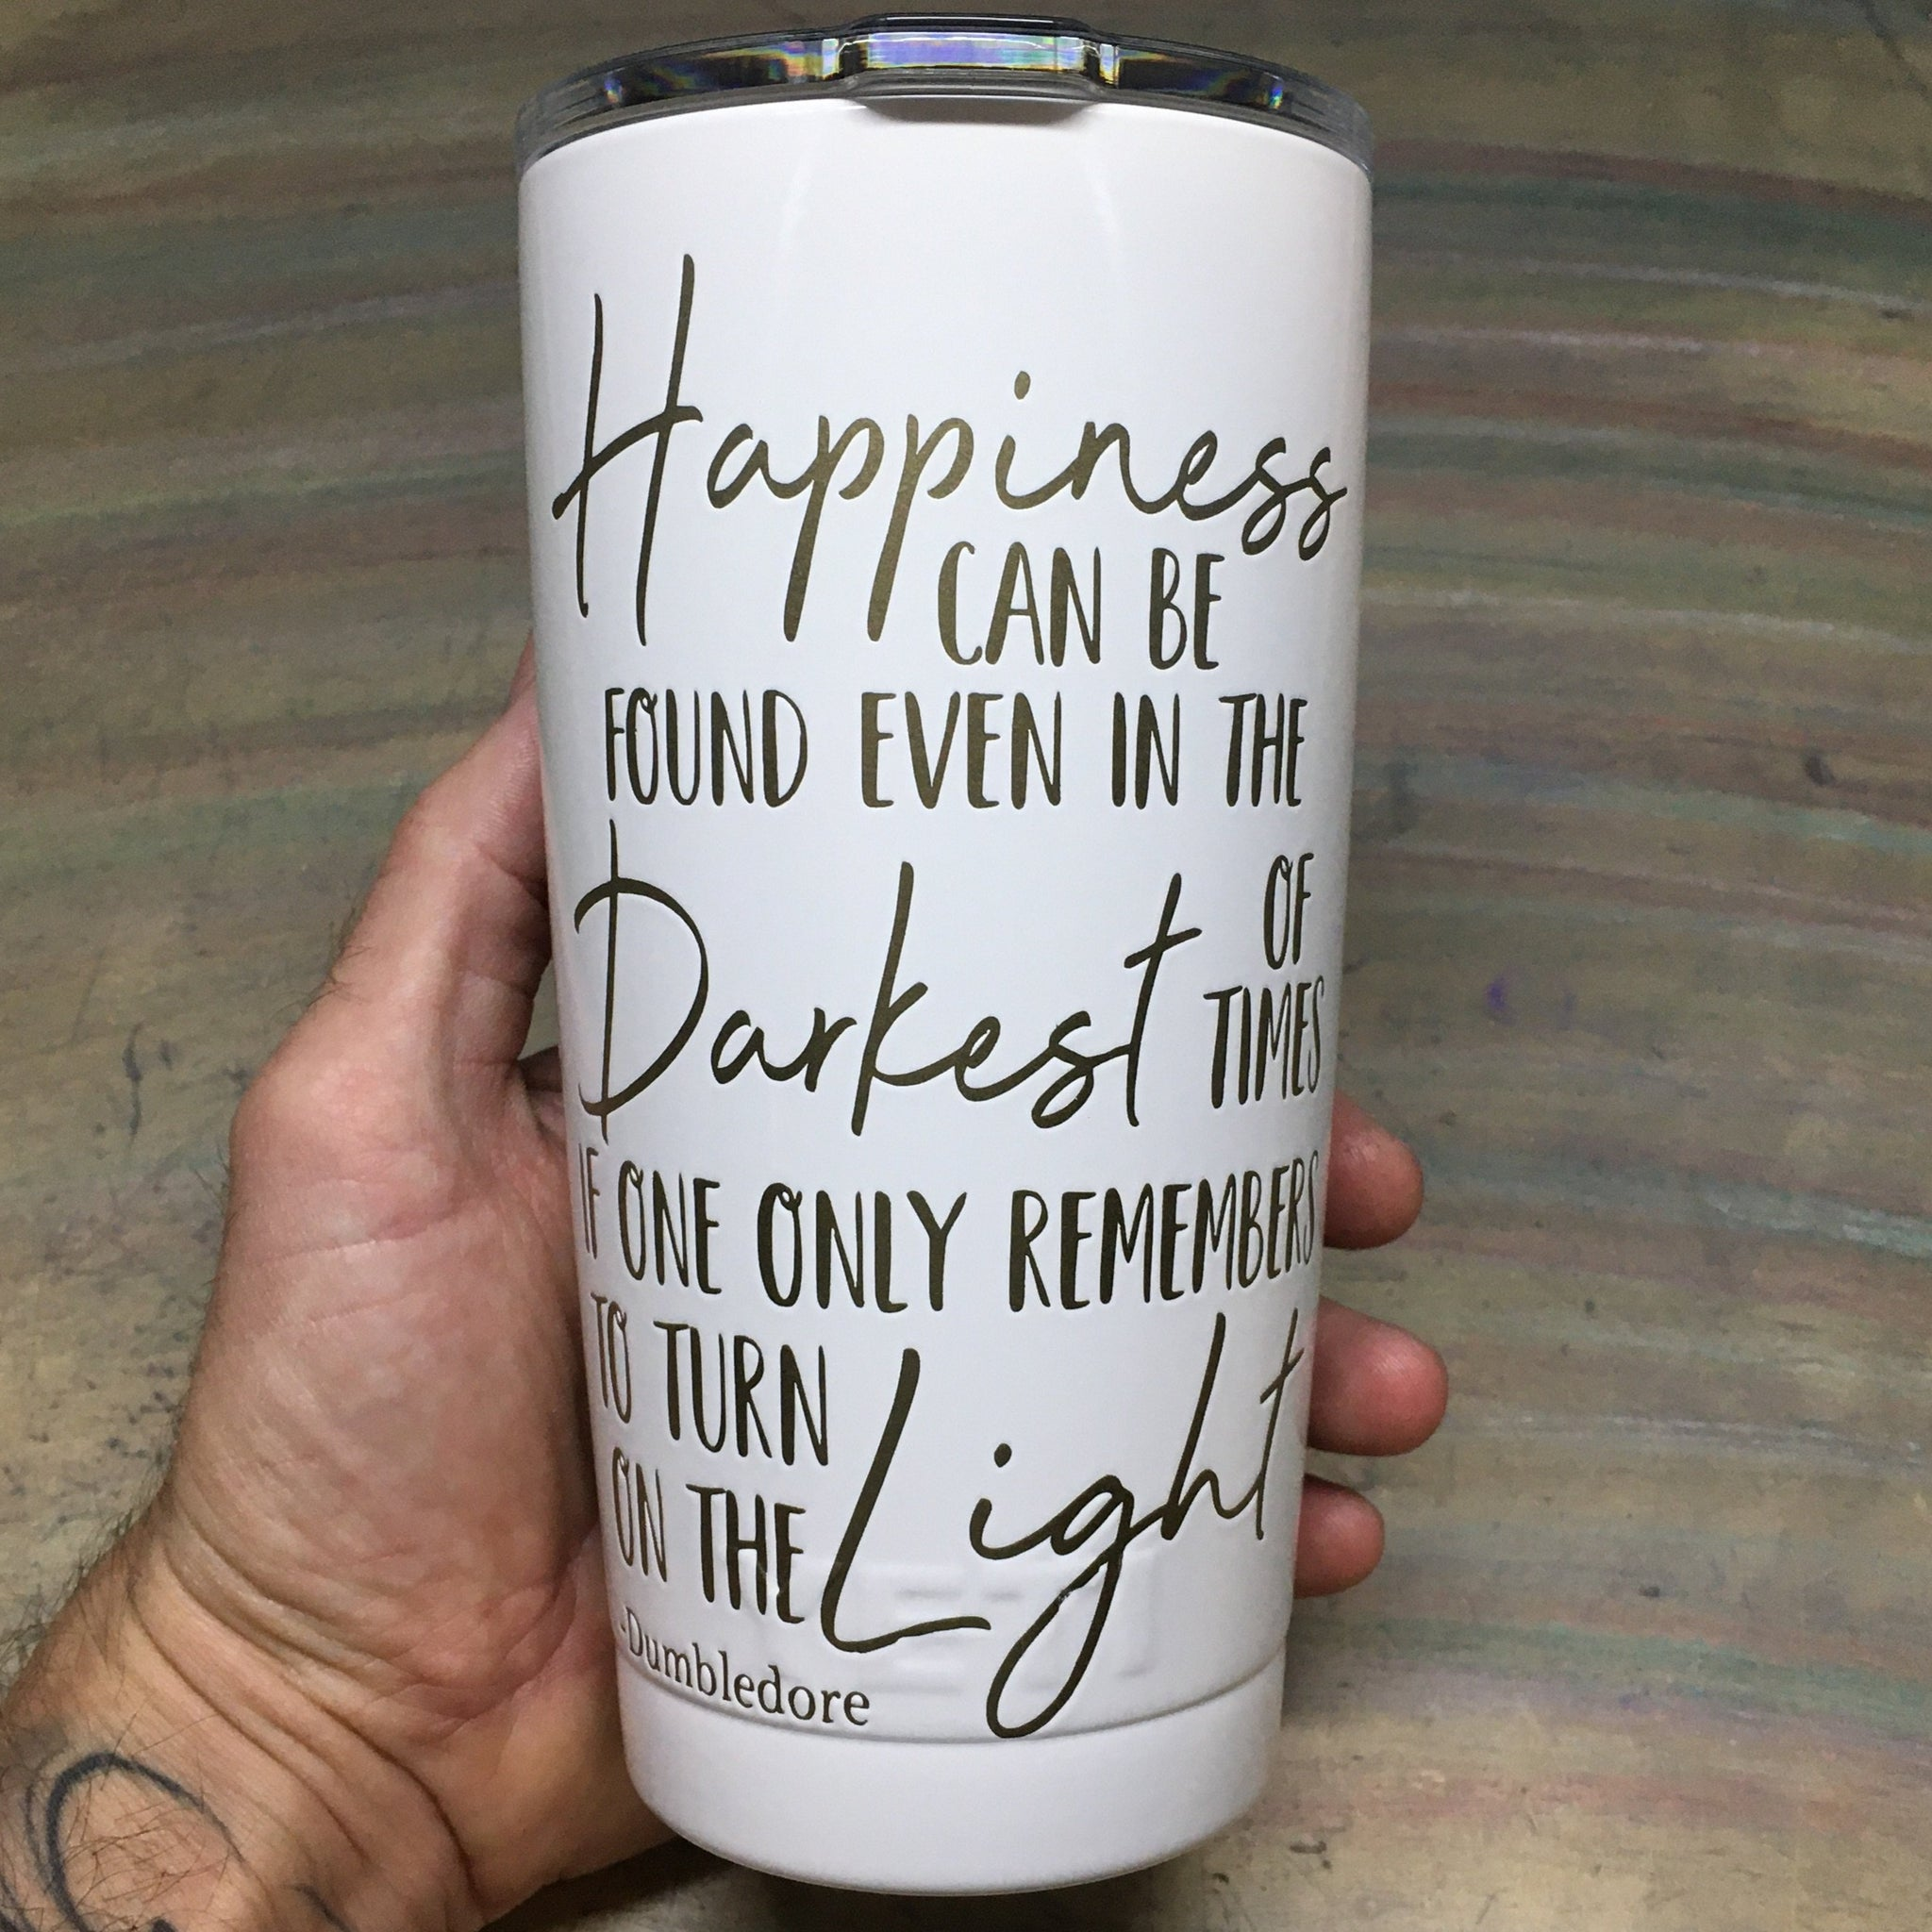 Dumbledores Quote - Happiness-The Utensil Company